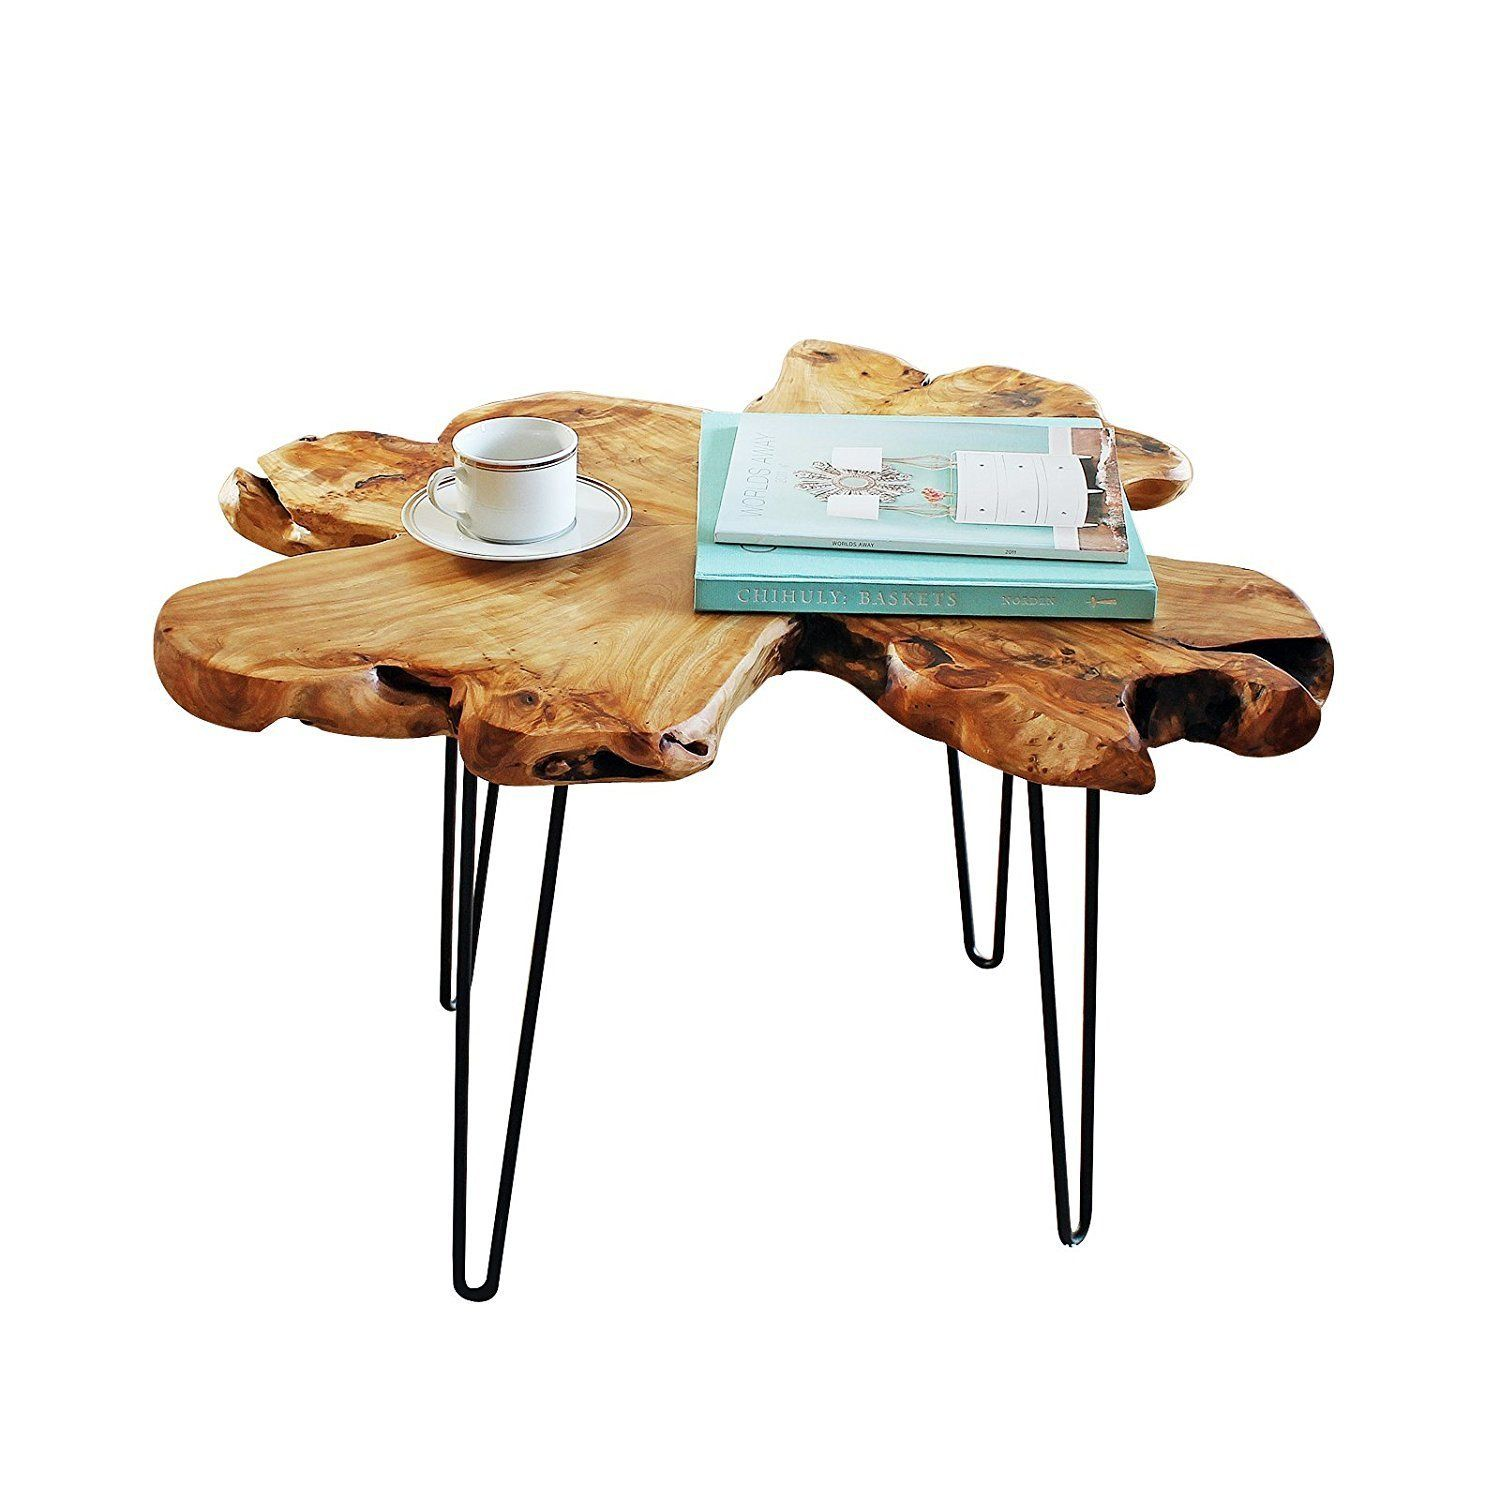 cedar live edge hairpin coffee table rustic mid century modern side room essentials accent dining buffet marble brass nautical chairs small with top farm style gold legs knotty